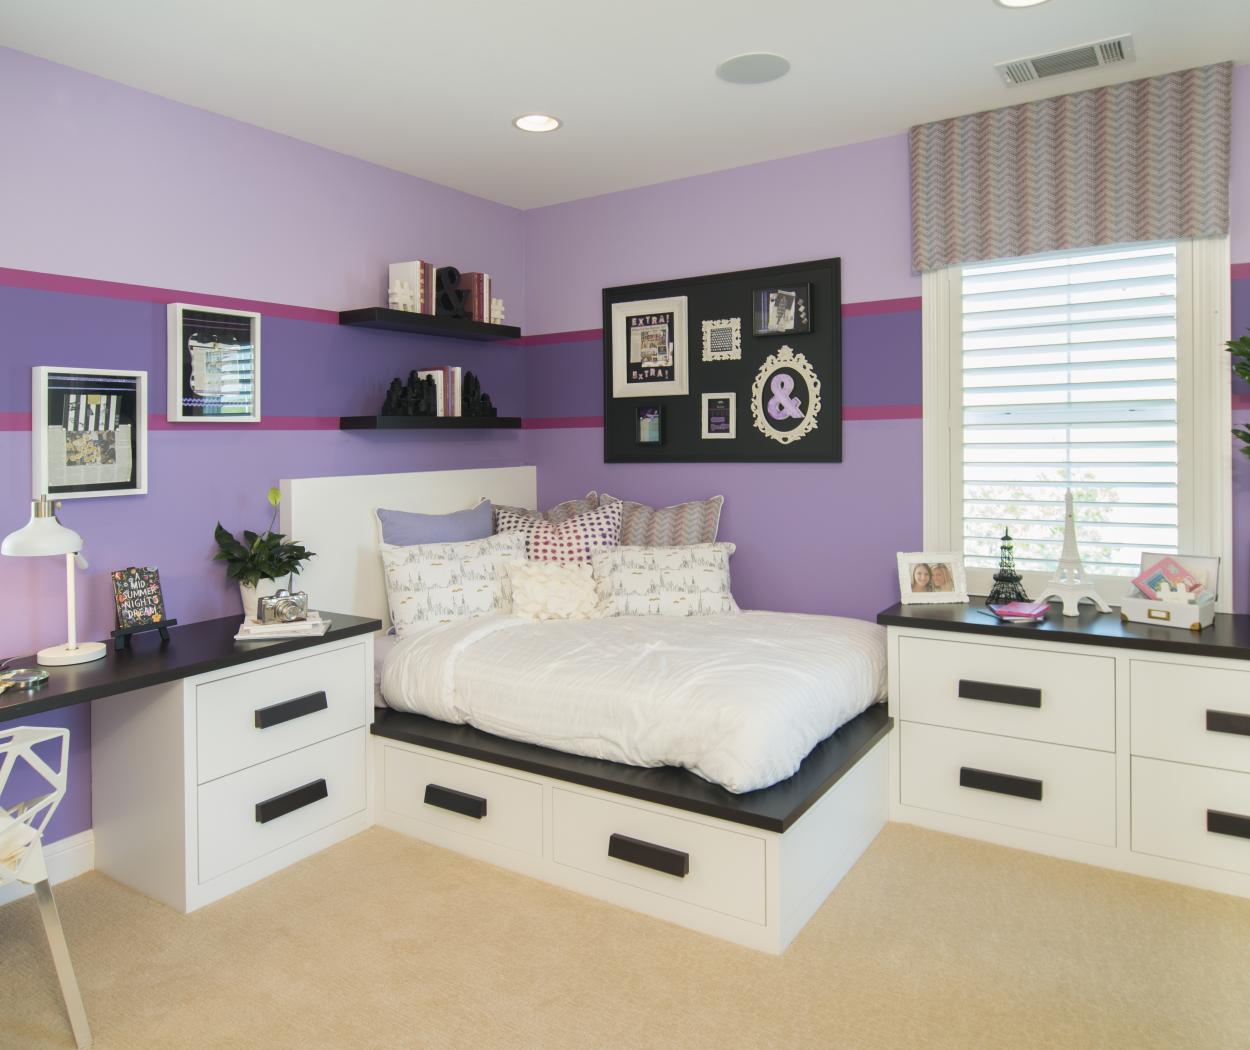 Beautiful Girl's Bedroom with White Built-Ins, Wood Handles and Wood Counter Tops